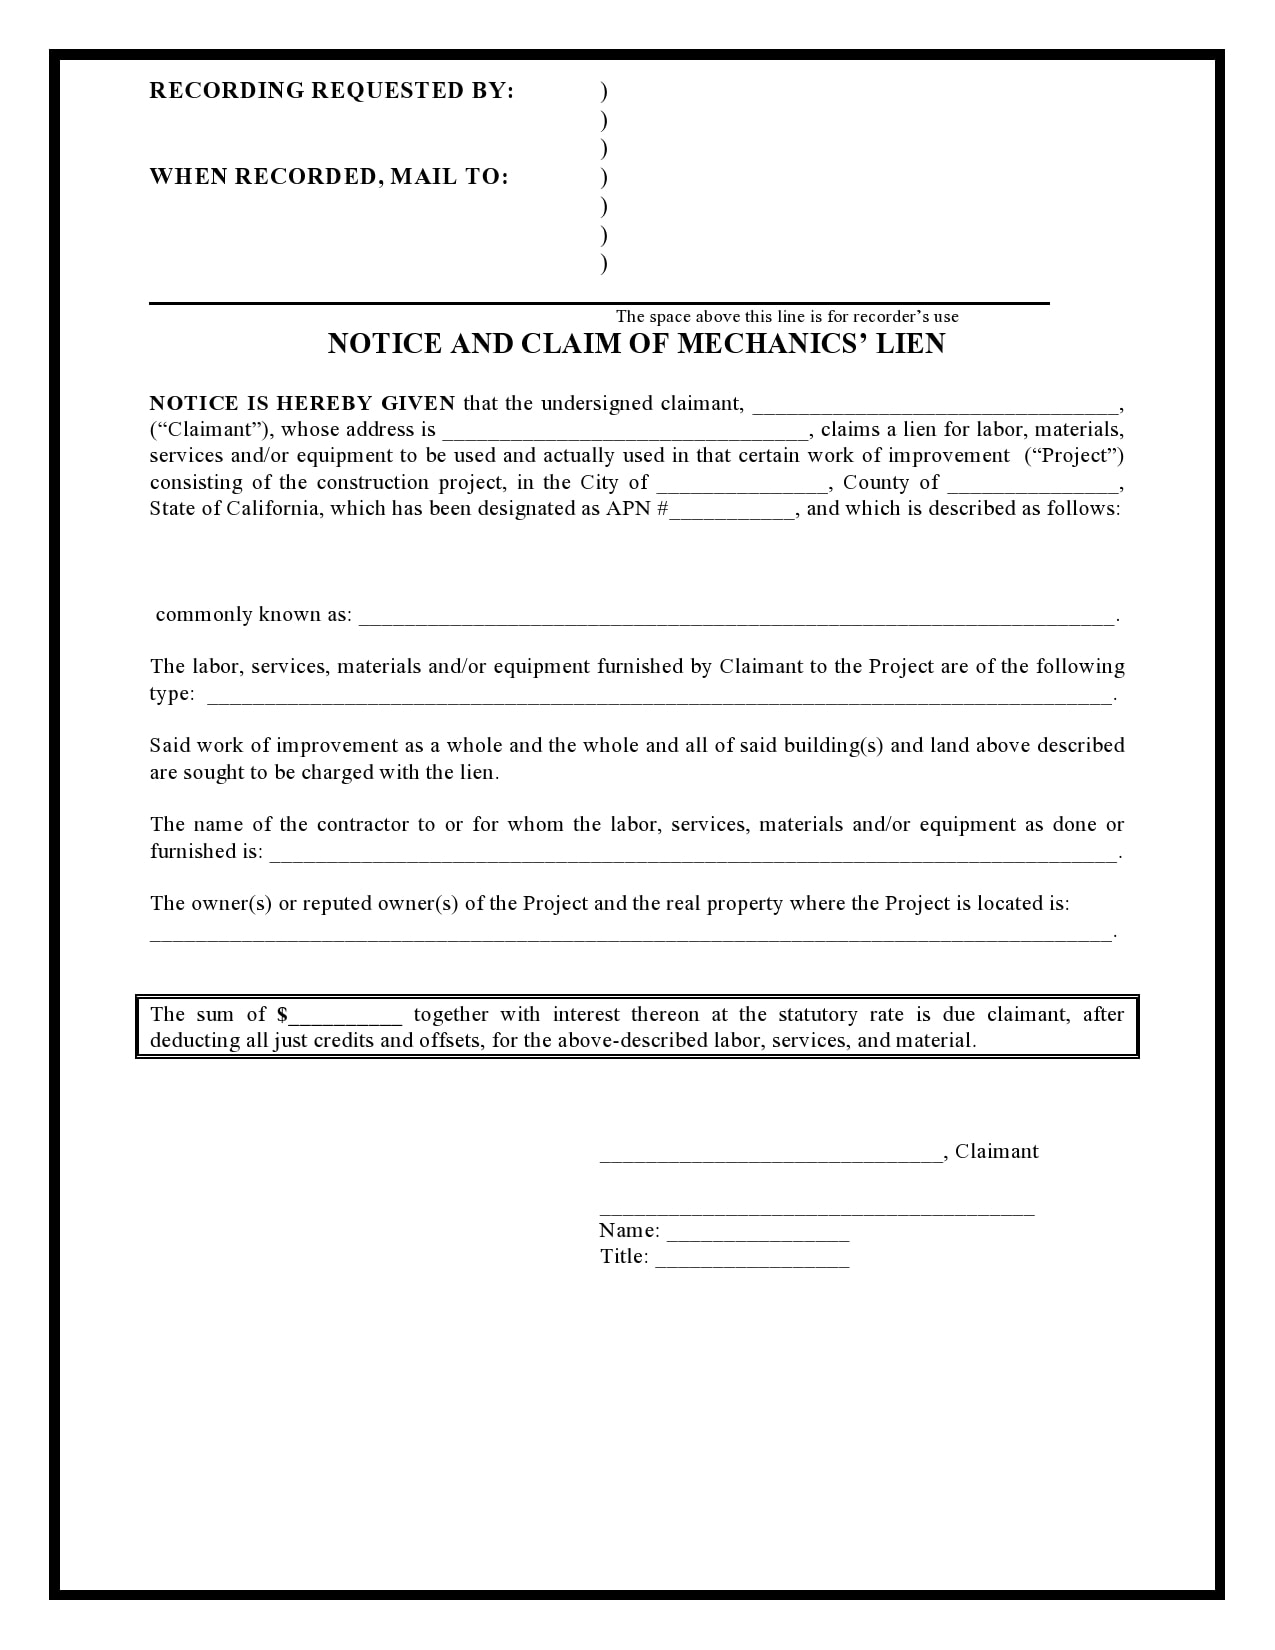 mechanics lien form 21